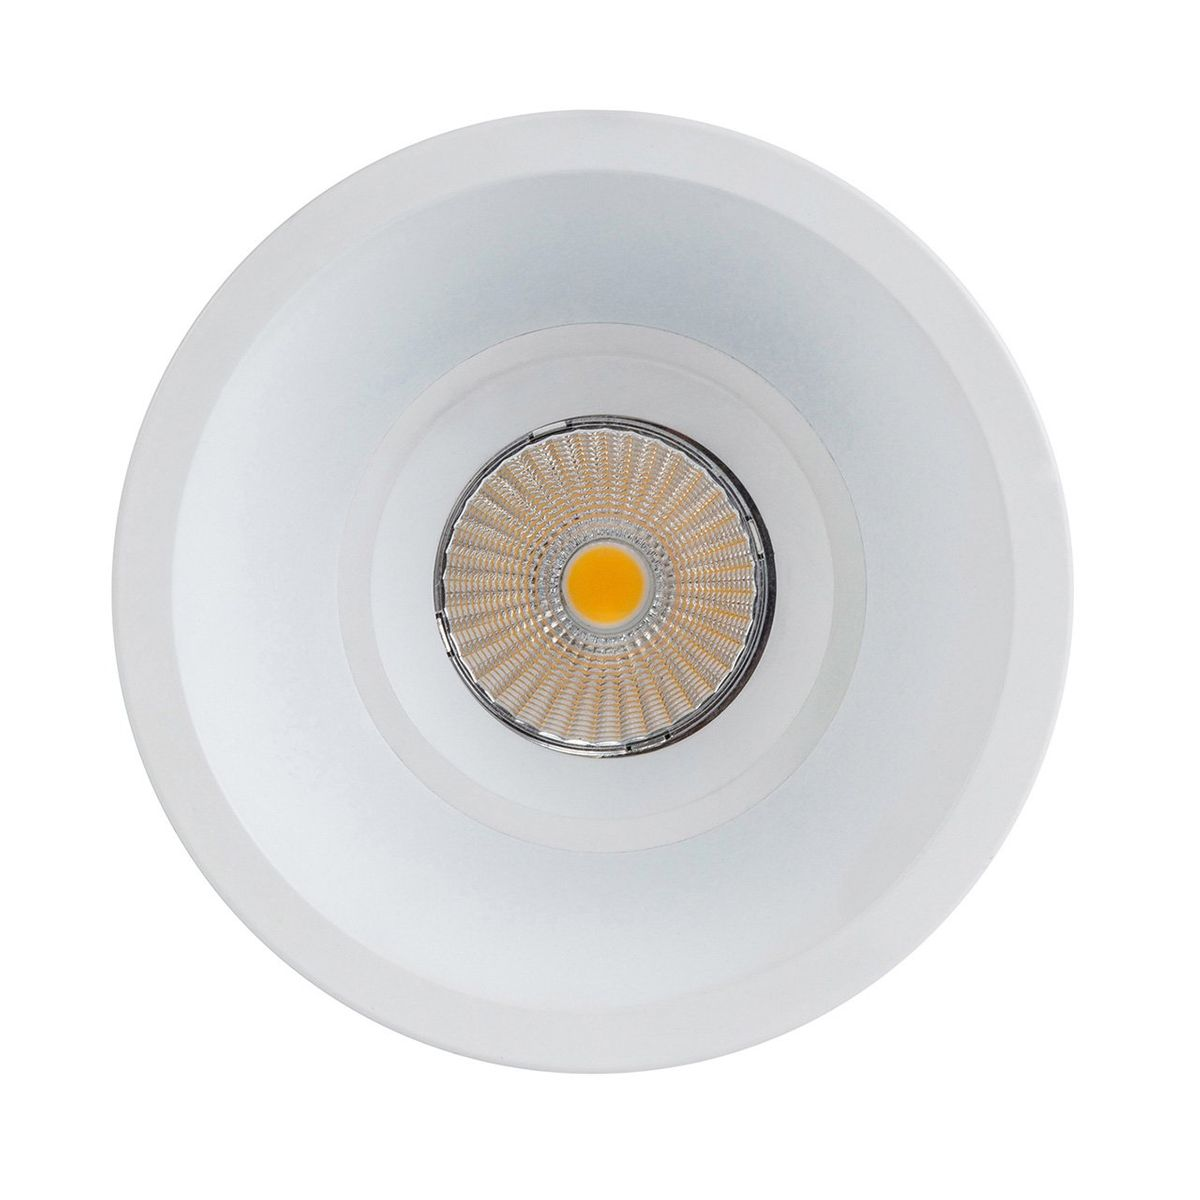 HV5514-WHT - PRIME White Fixed Deep LED Downlight – Bild 3